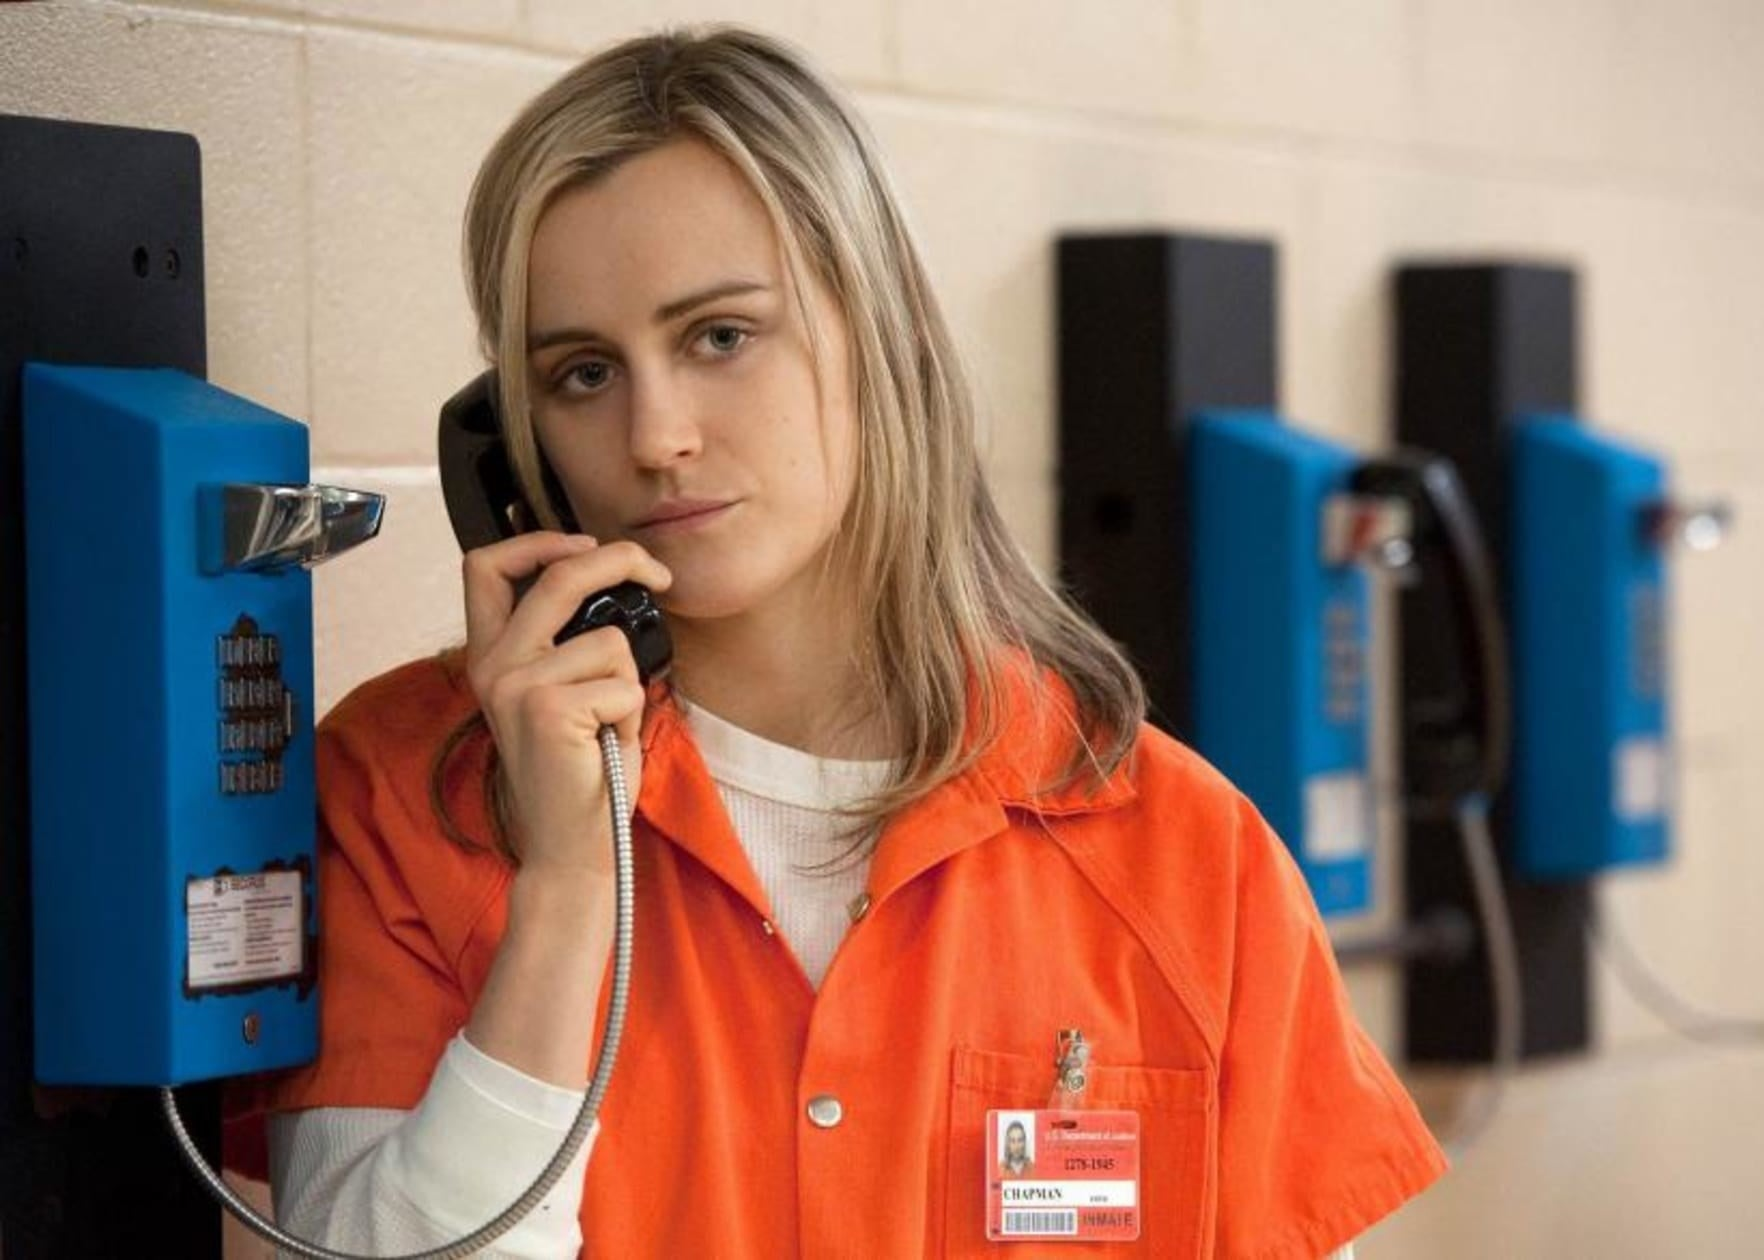 Piper using the payphone while in prison